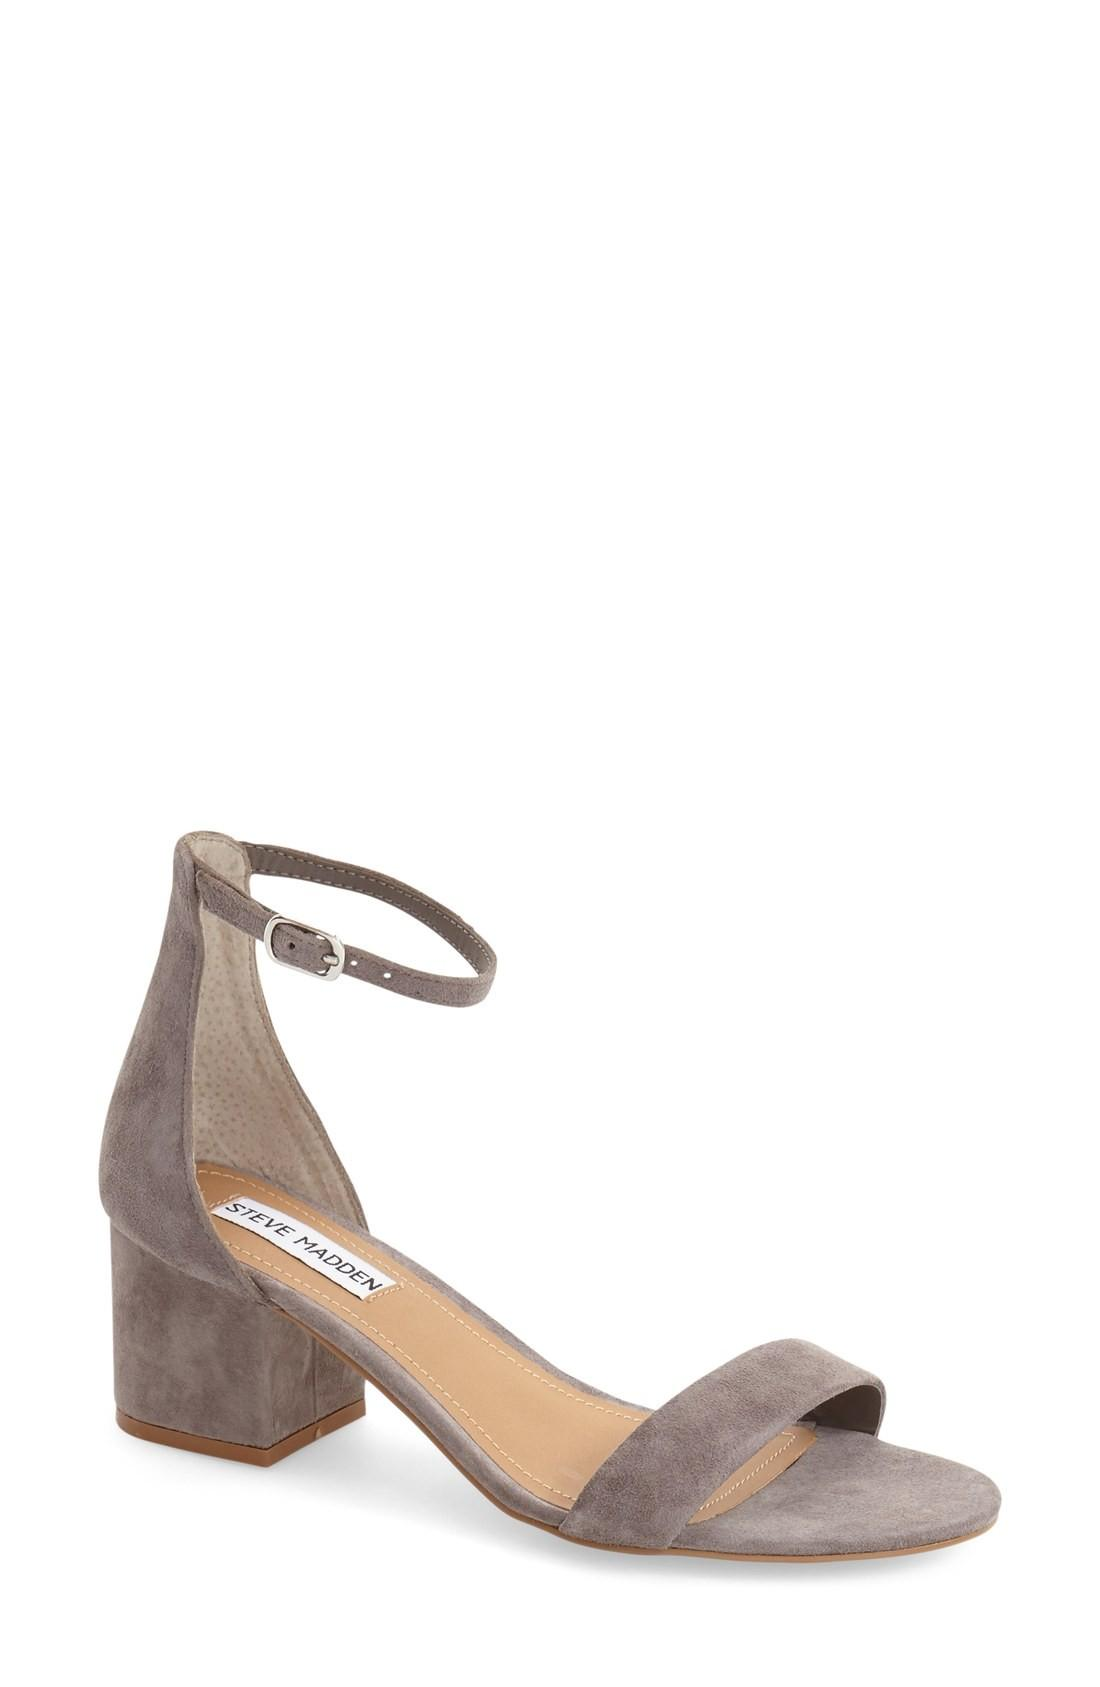 46a1f834760 Style Name  Steve Madden Irenee Ankle Strap Sandal (Women). Style Number   5153231 1.